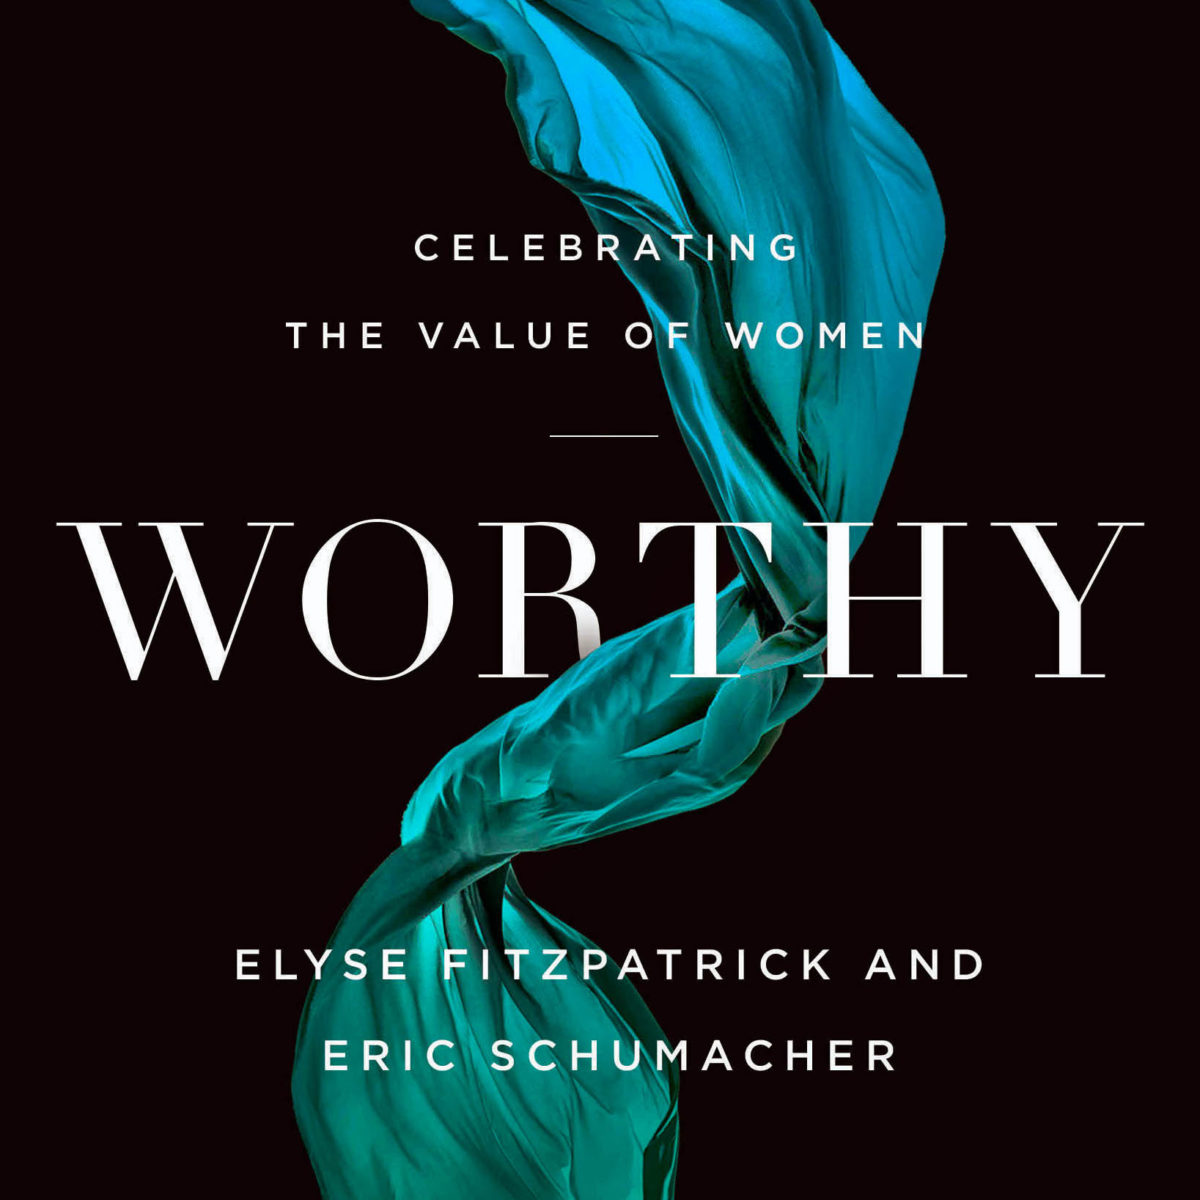 Worthy: The Book, The Song, The Podcast